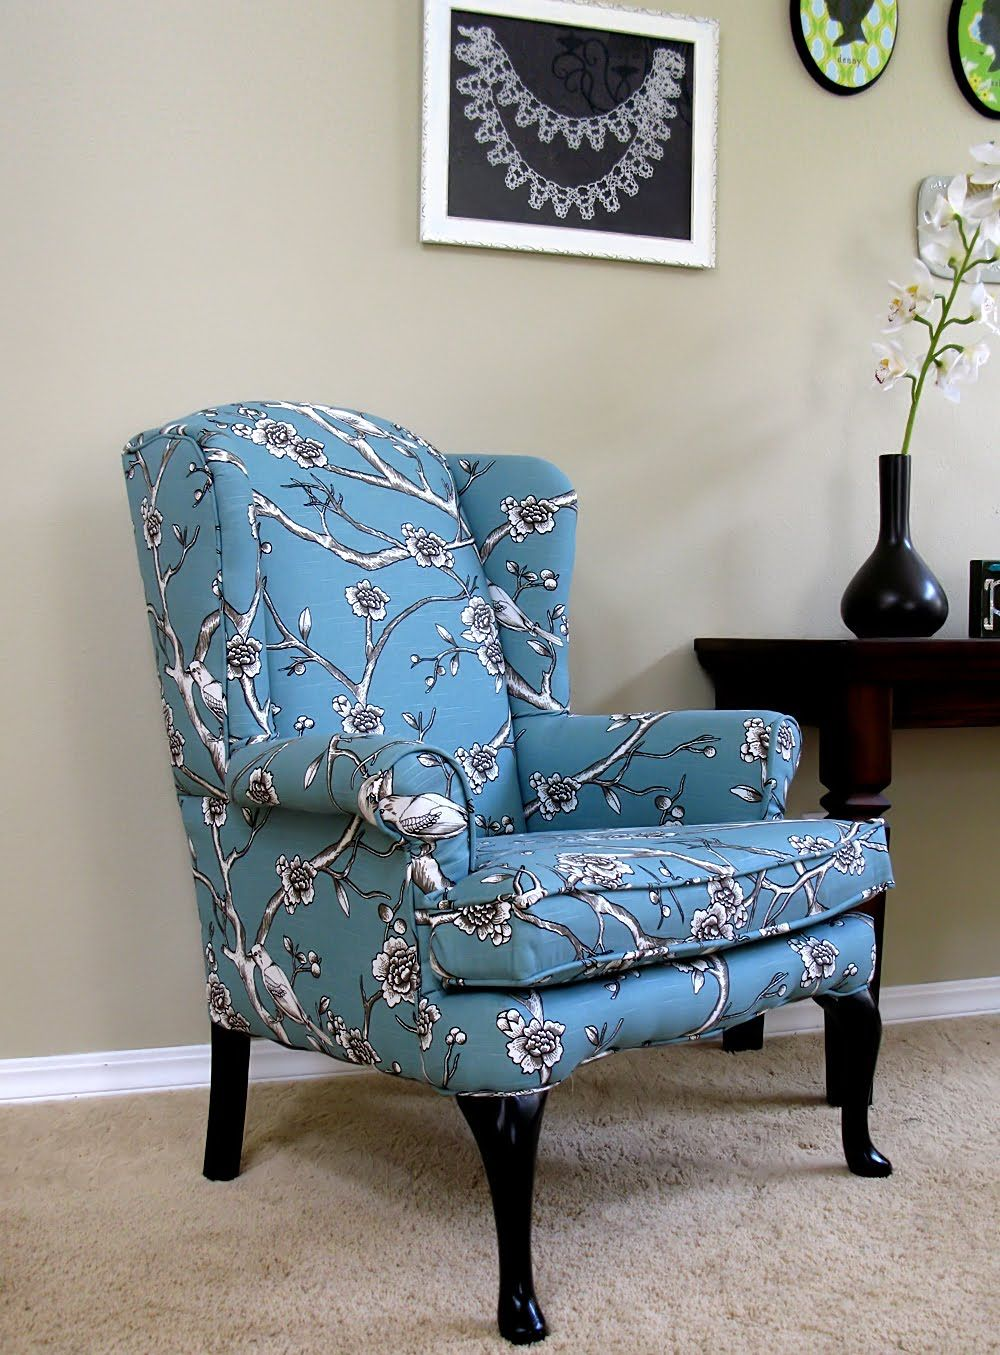 Comfortable Wingback Chair Designs For Living Room Furniture : Awesome DIY  Blue Color Scheme Blossom Wingback Chair By Dwell Studio With Elegant Black  Wood ...